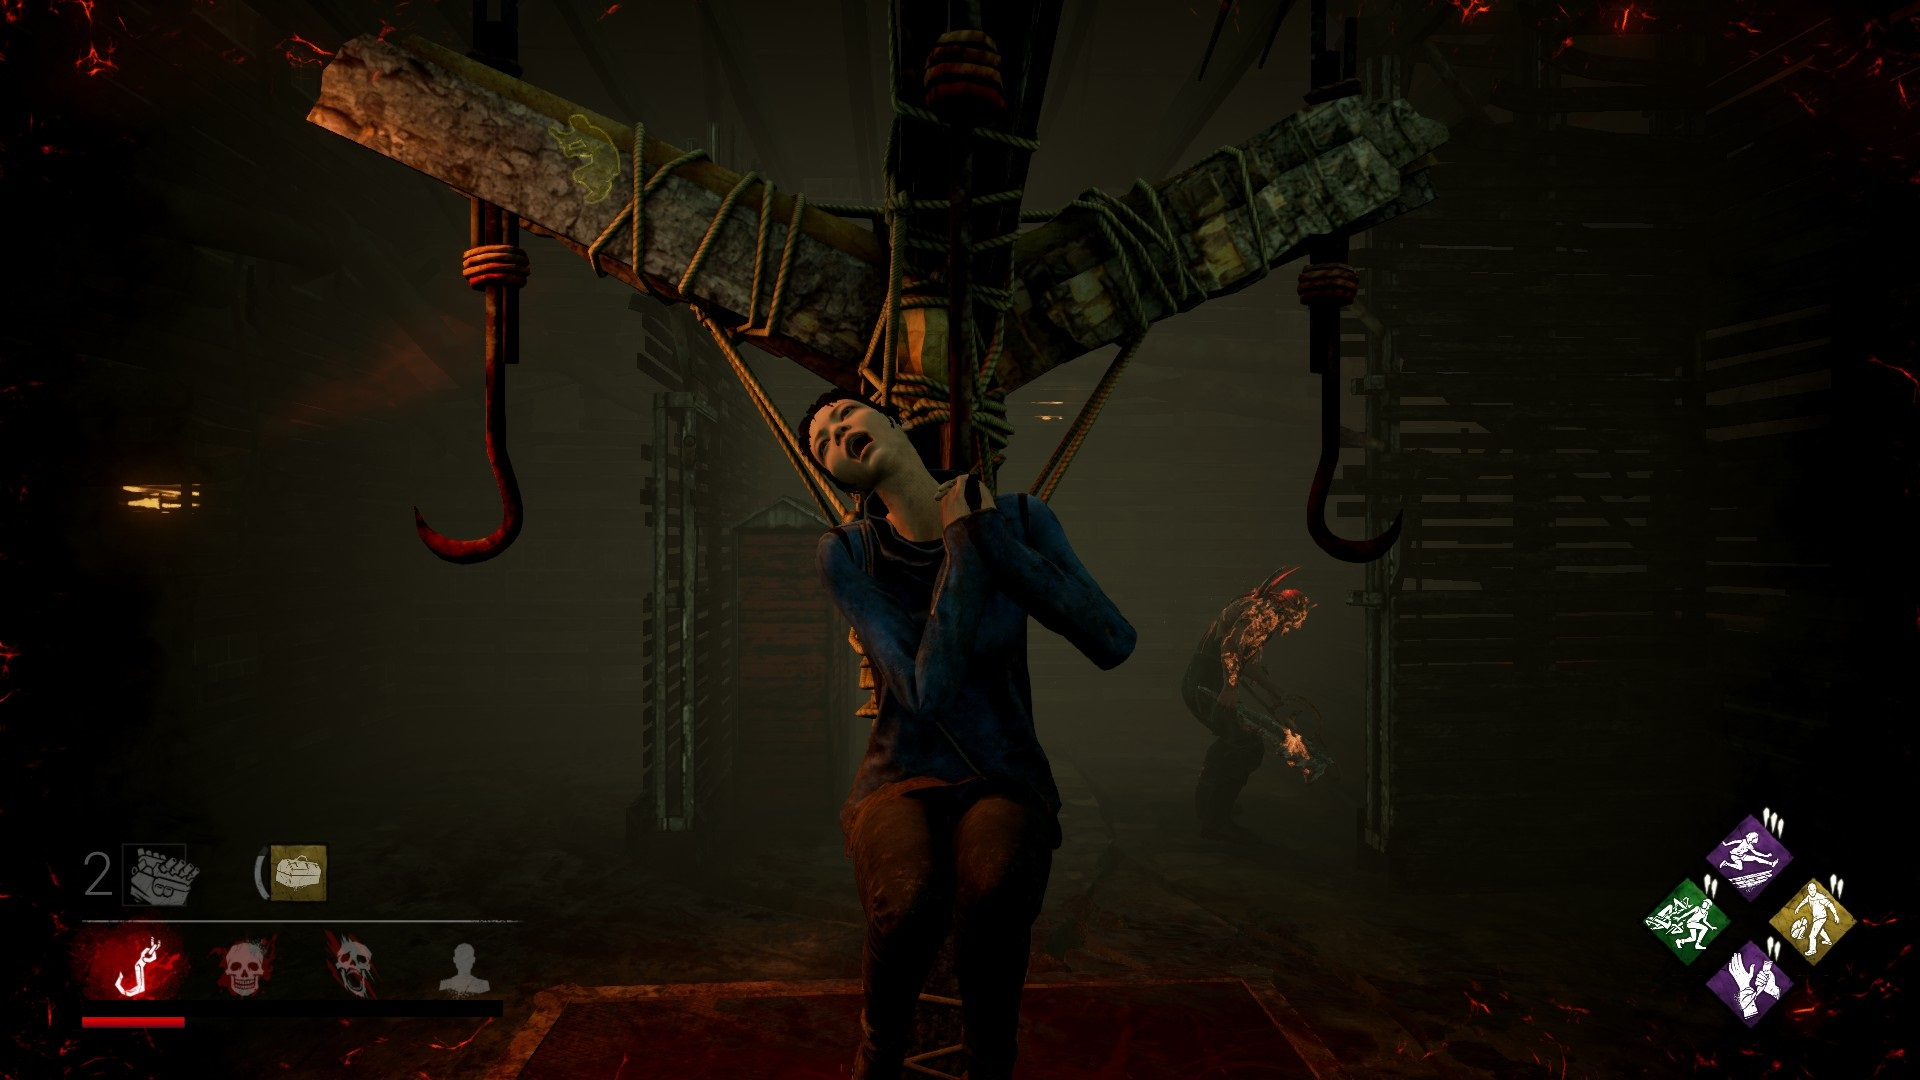 Dead by Daylight Feng Hanging